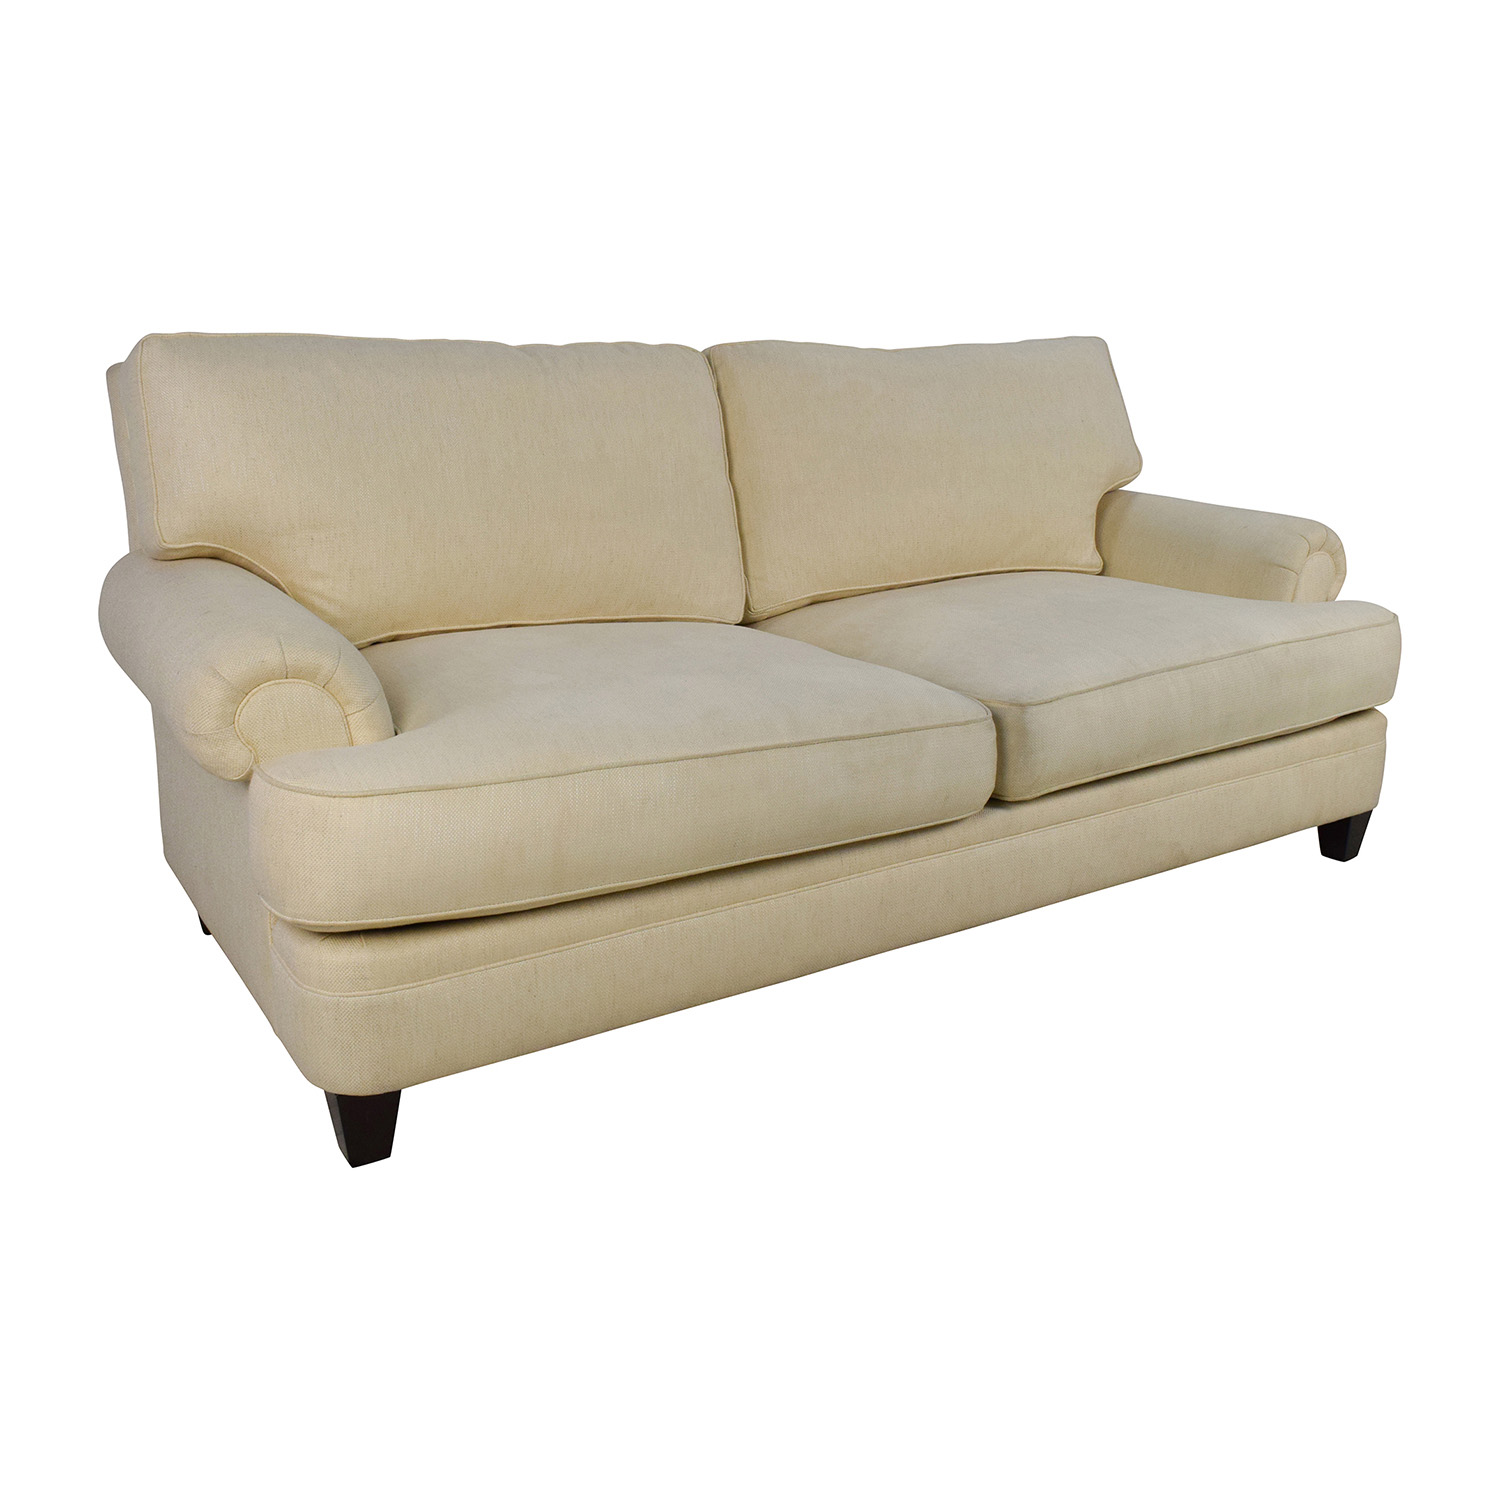 henredon sofa fabrics motion sofas on sale 83 off fireside short beige 3 seater